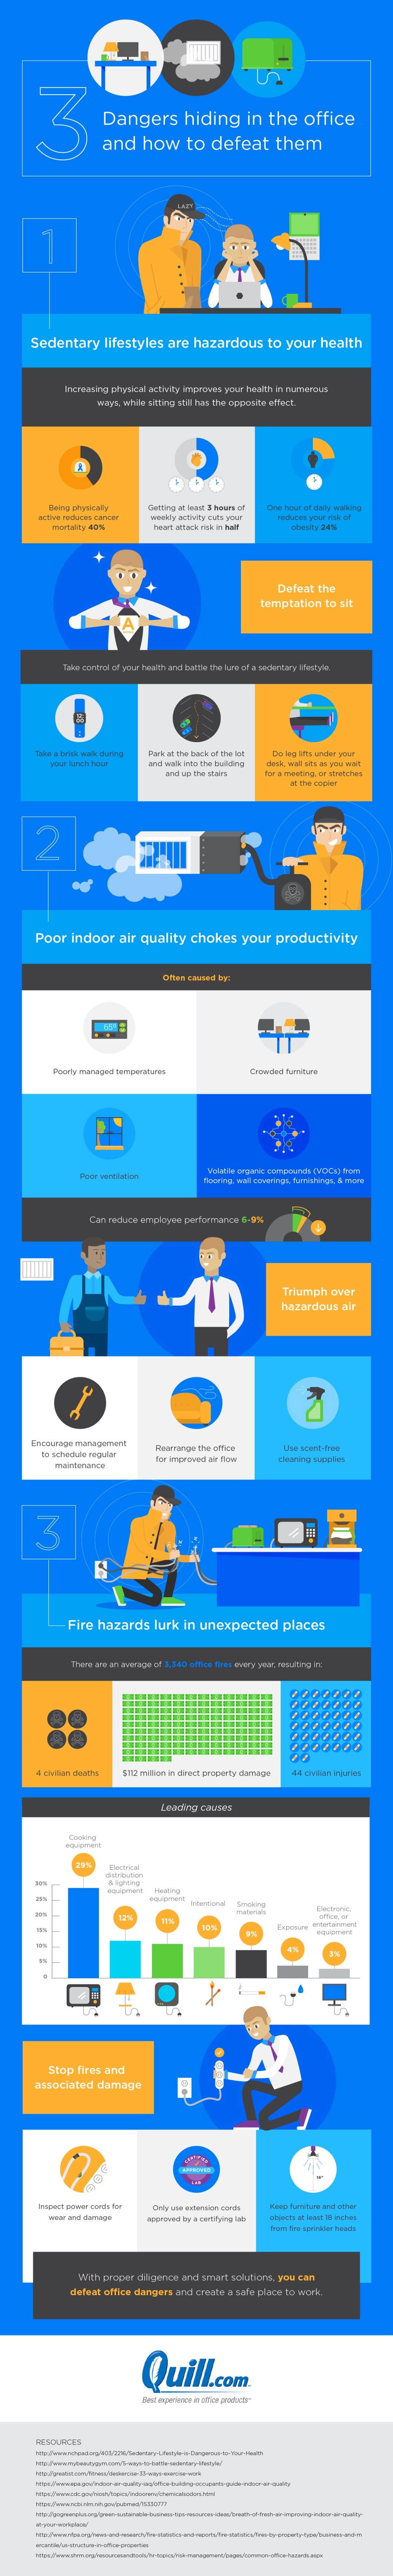 Things At Your Workplace That Could Kill You - Infographic